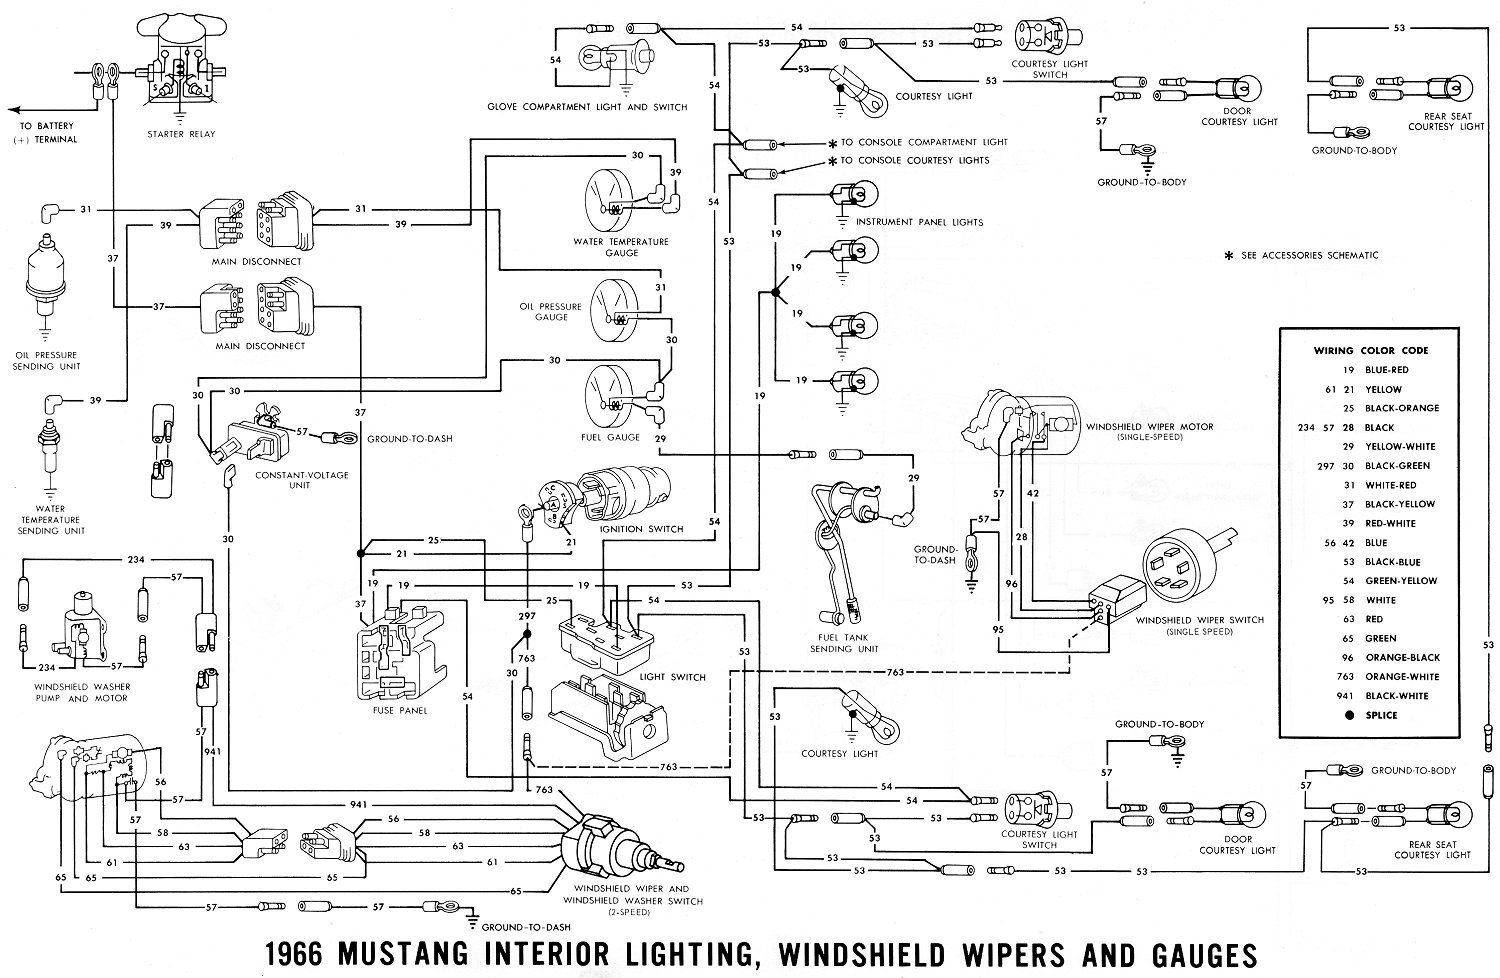 66 ford mustang wiring diagram asco 8551 headlight switch also 1967